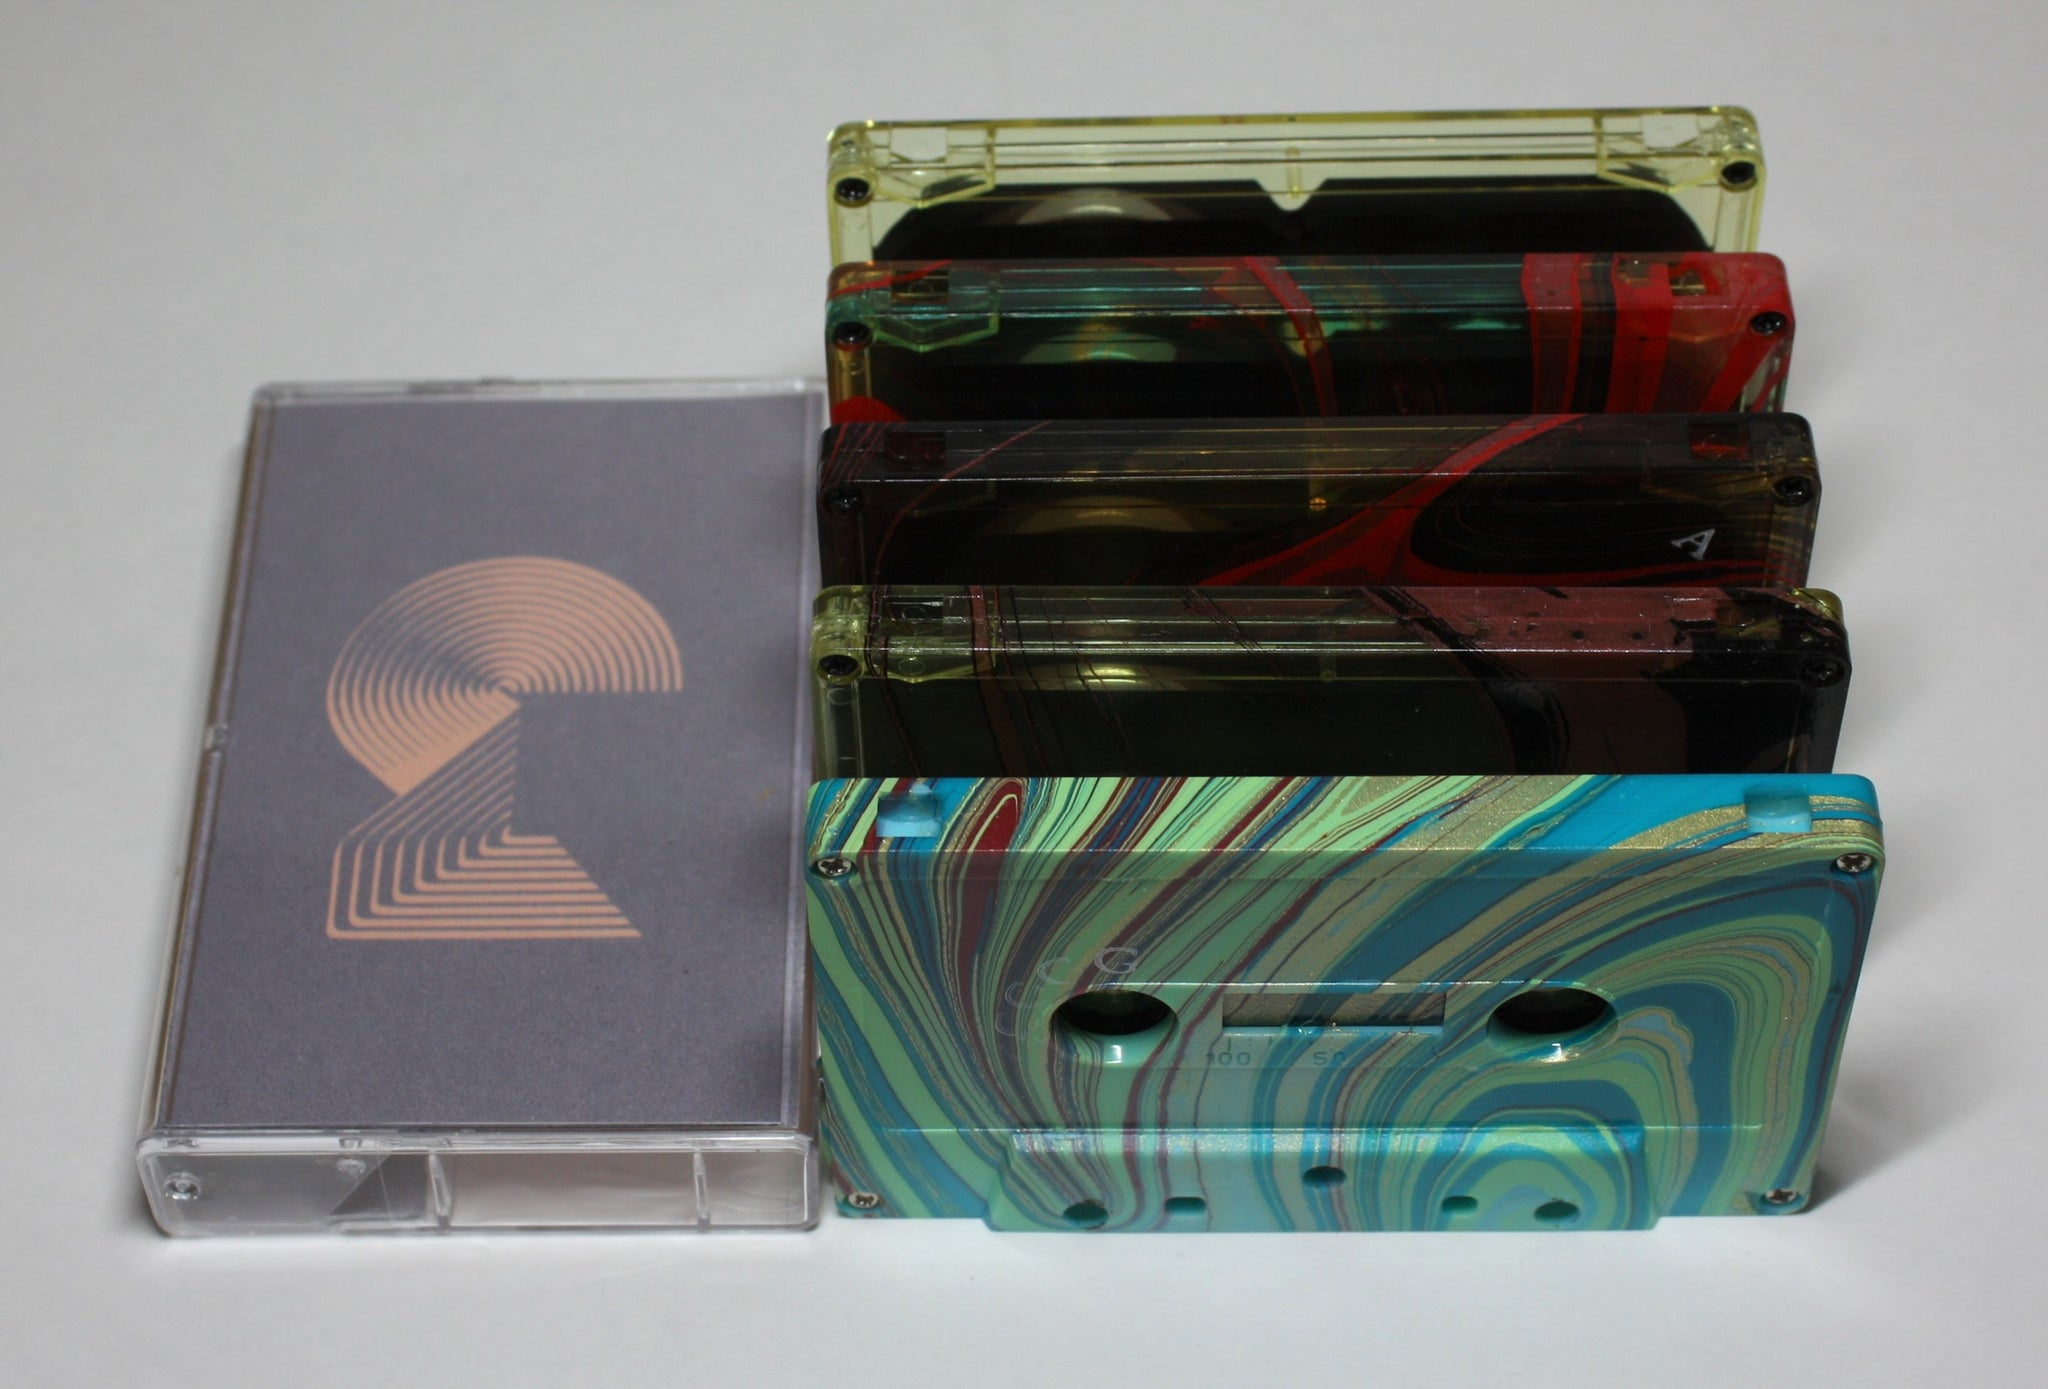 GLASSING - 'Spotted Horse' cassette